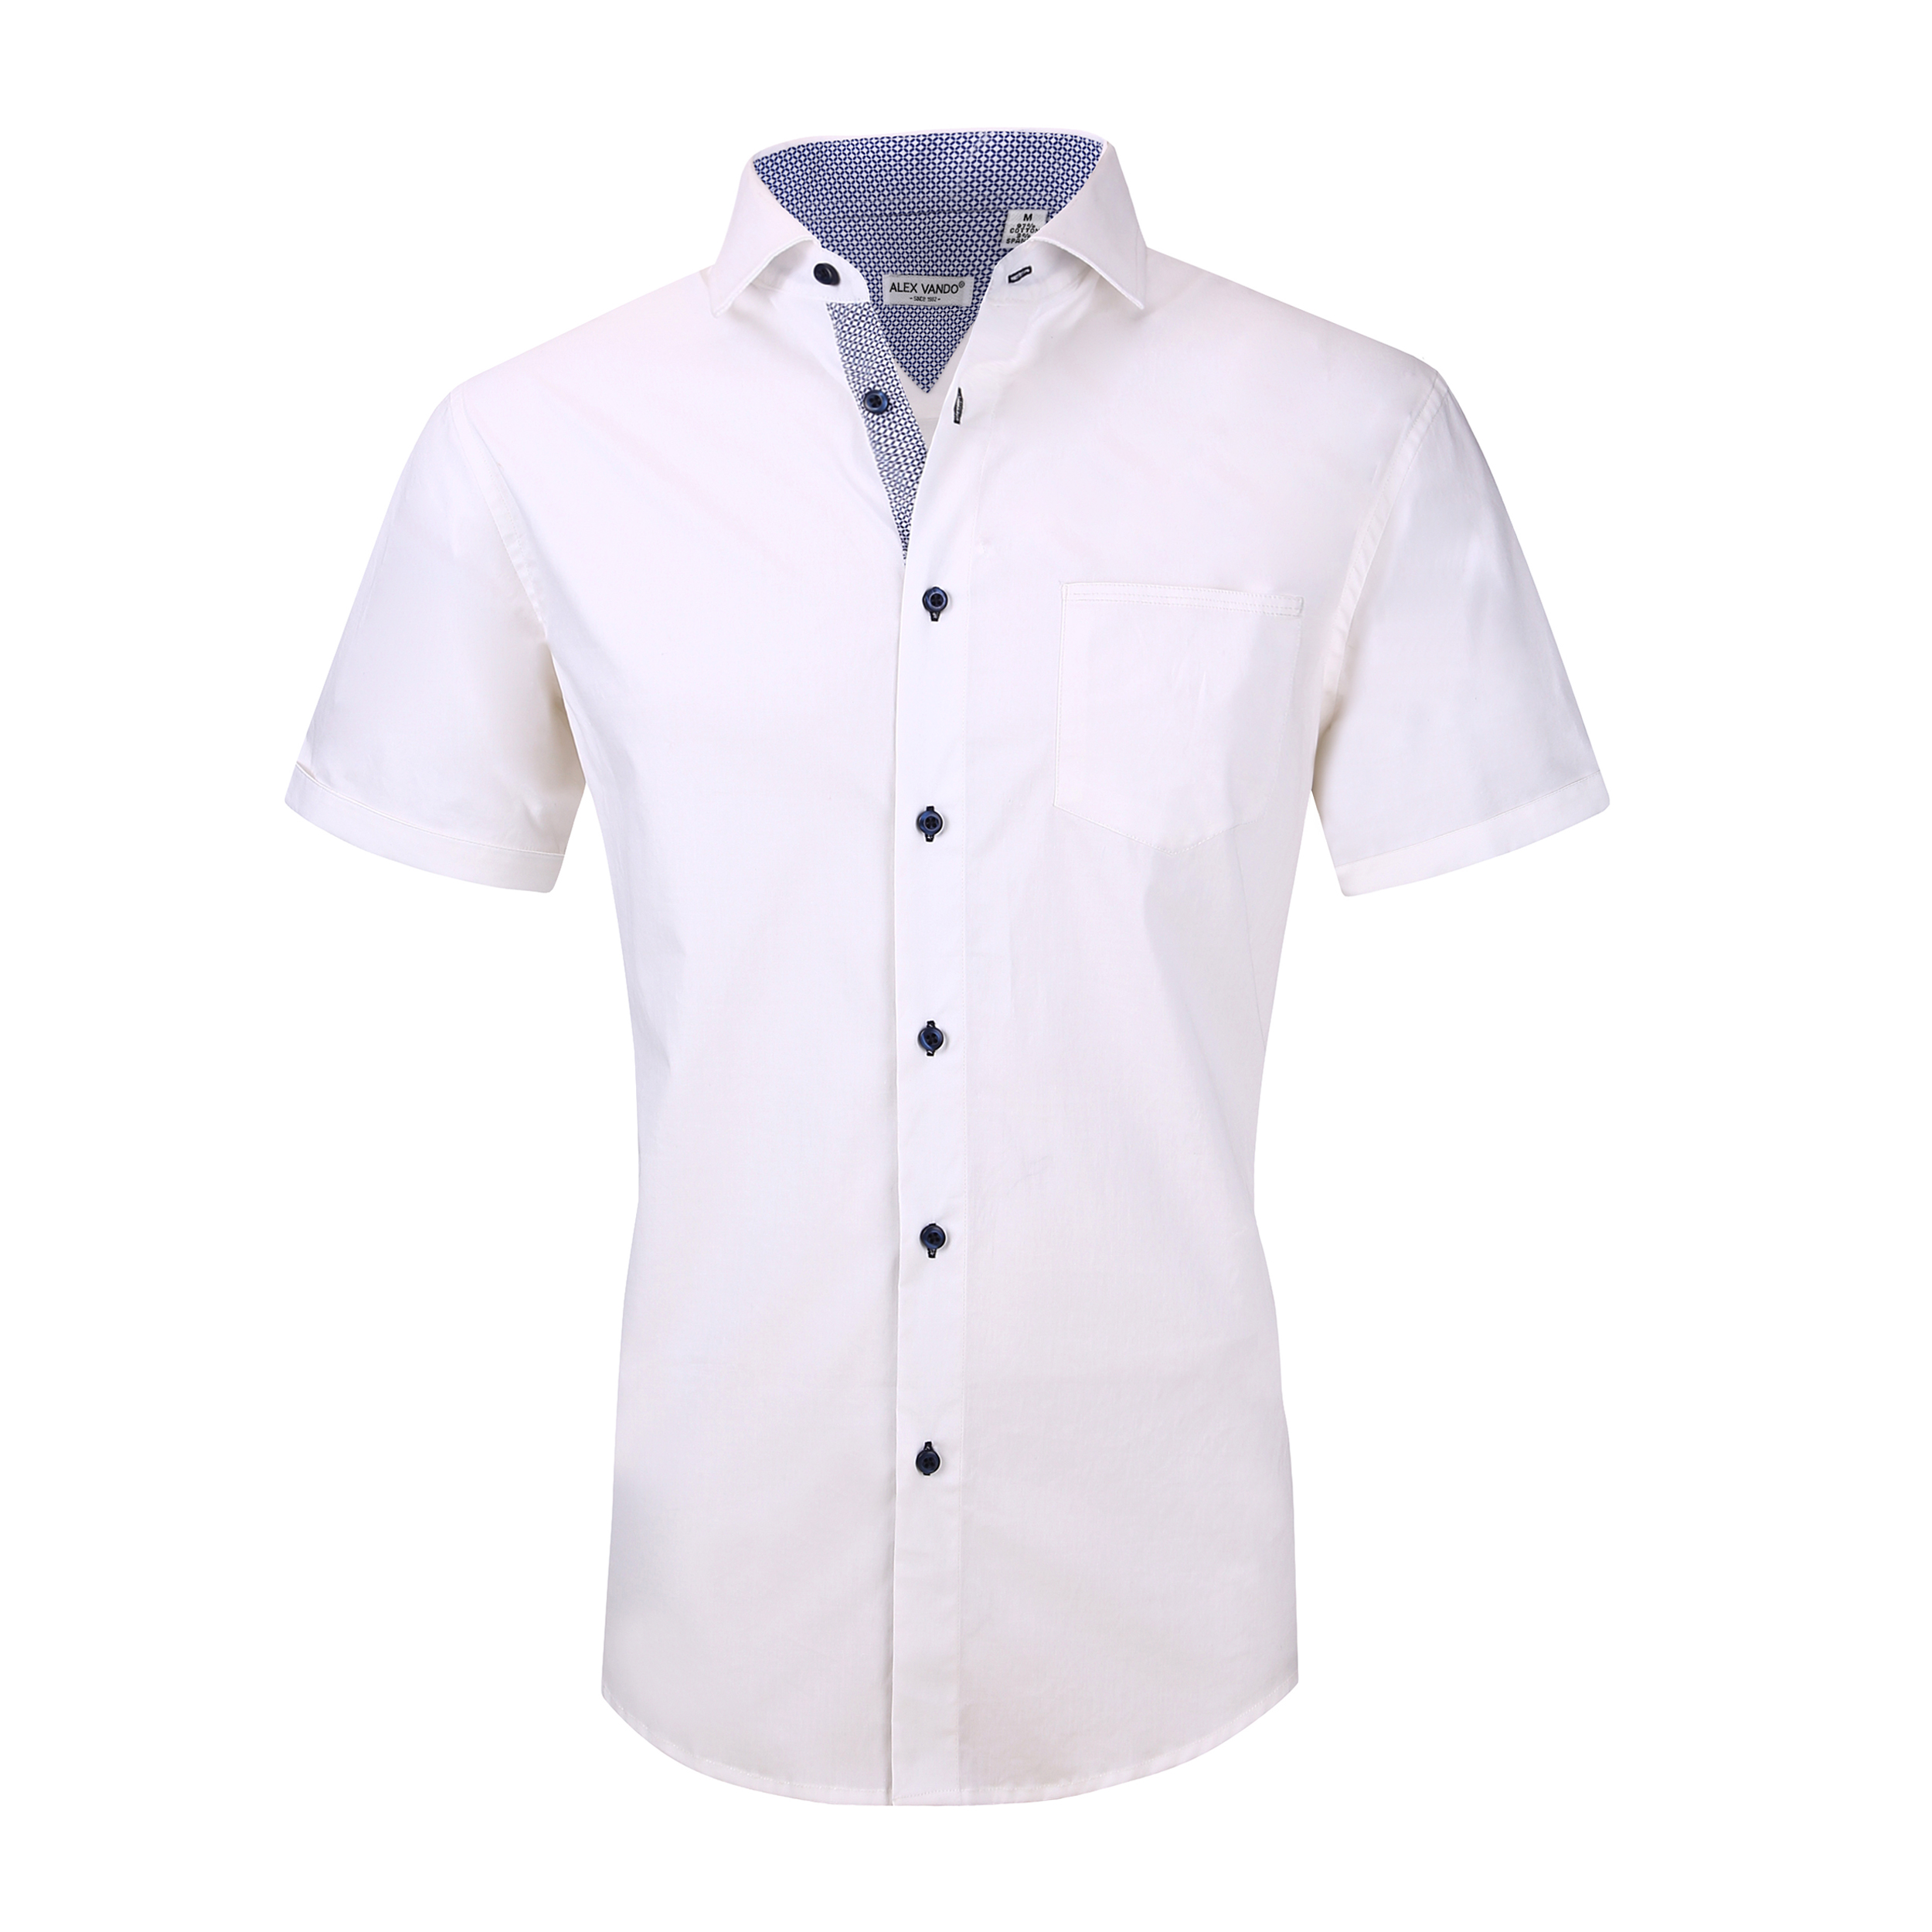 top-rated authentic durable service discount coupon Mens Dress Shirts Cotton Spandex Regullar Fit Short Sleeve Shirt White